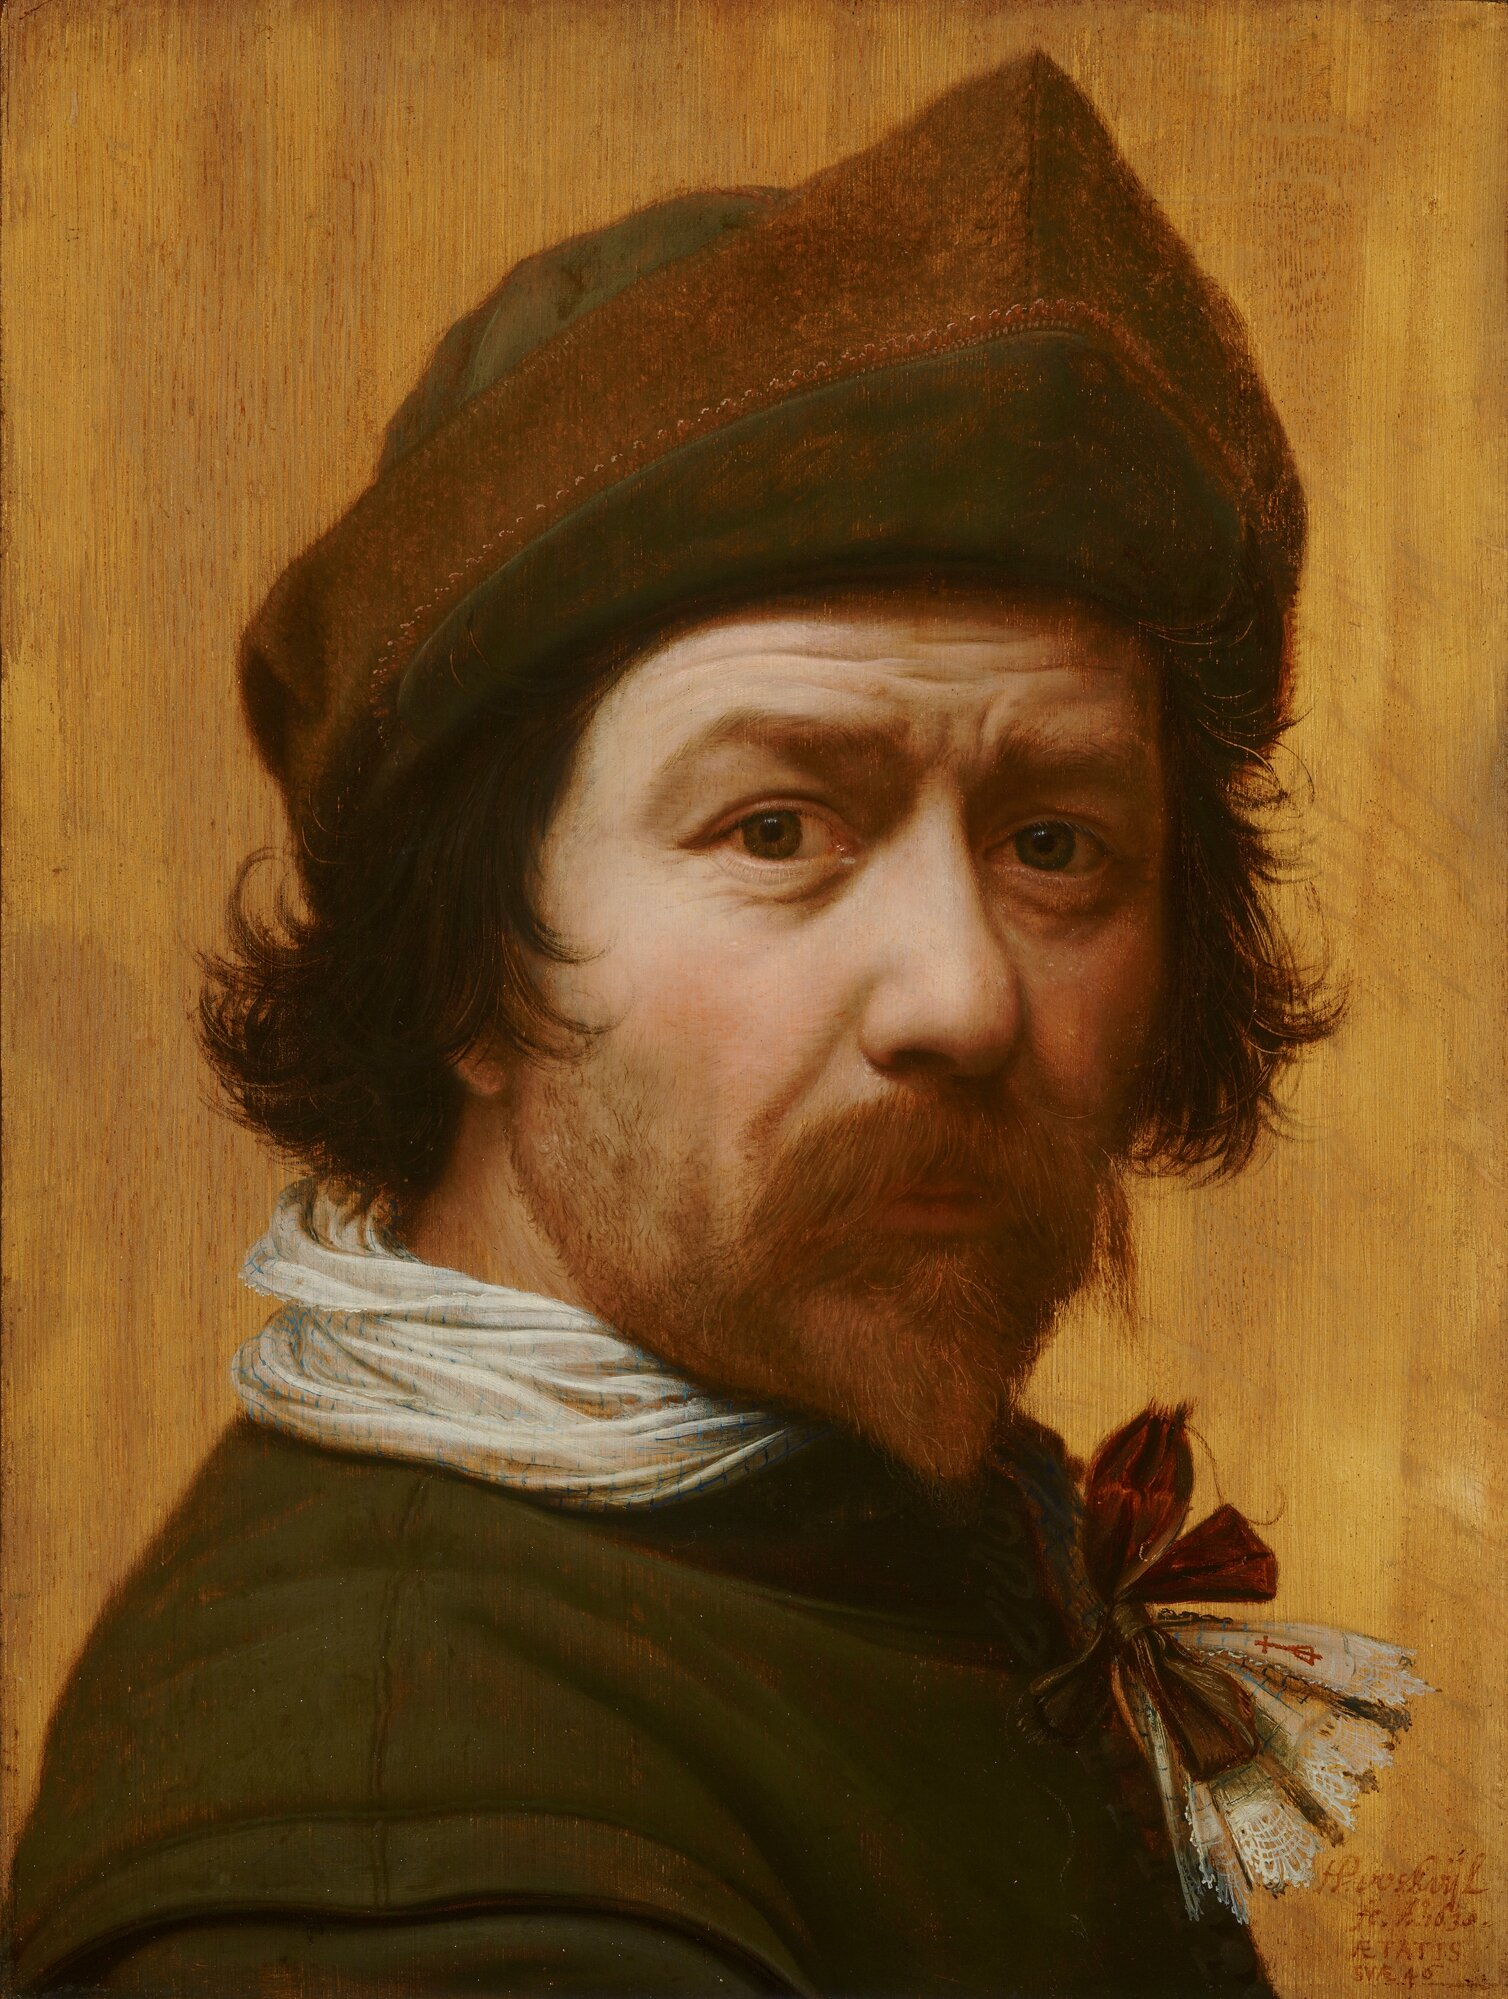 Exhibition Dutch Self-Portraits - Selfies of the Golden Age at the Mauritshuis in The Hague